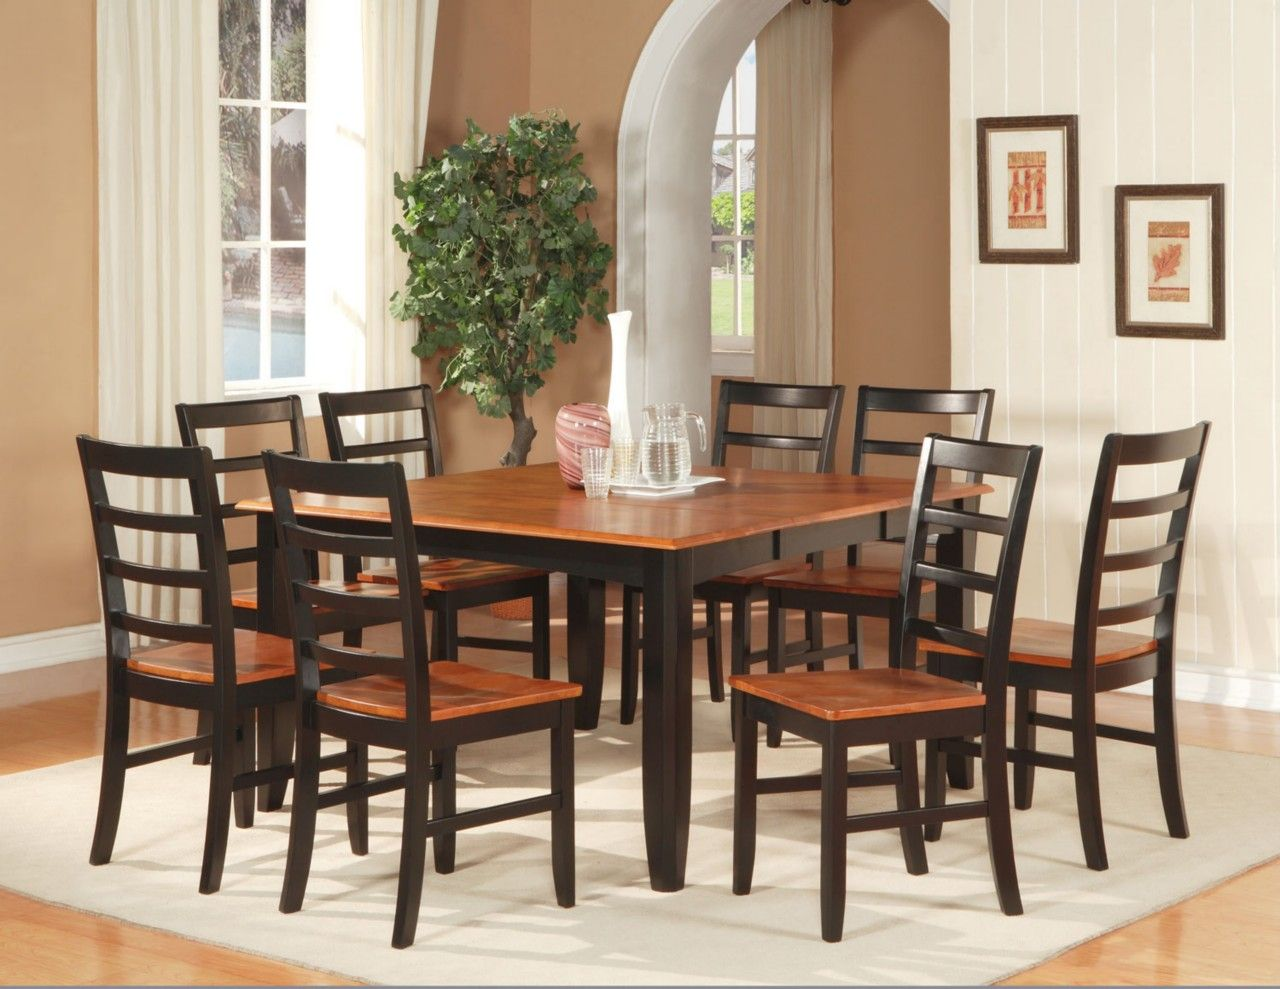 Dining Room Tables  Valuable Information To Get To Know More Extraordinary Dining Room Furniture Jacksonville Fl Inspiration